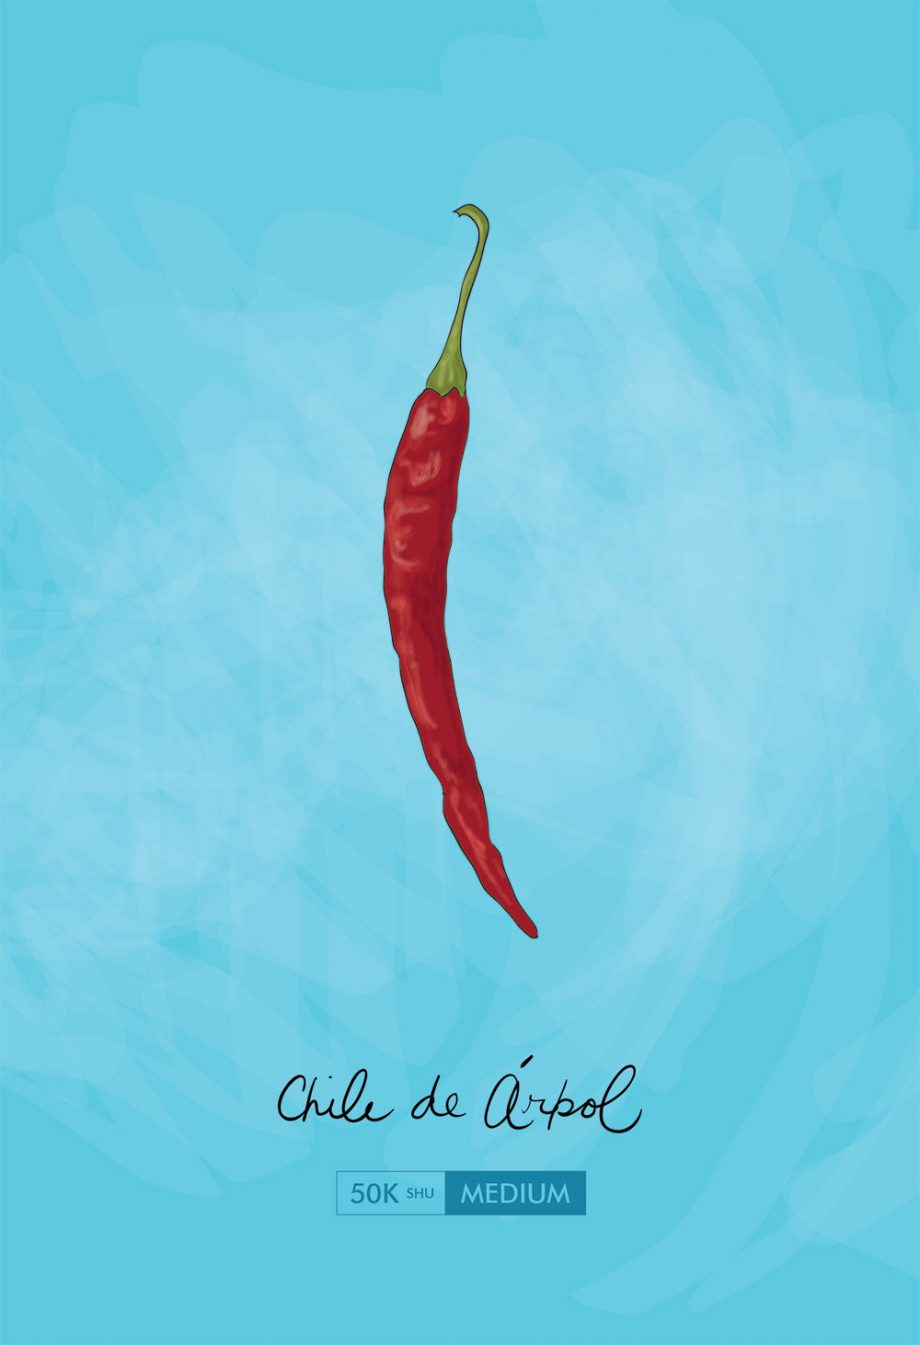 chile-de-arbol-kitchen-art-chili-pepper-print-mexican-rustic-large-print-poster-giclee-on-satin-or-cotton-canvas-5817ac4c2.jpg